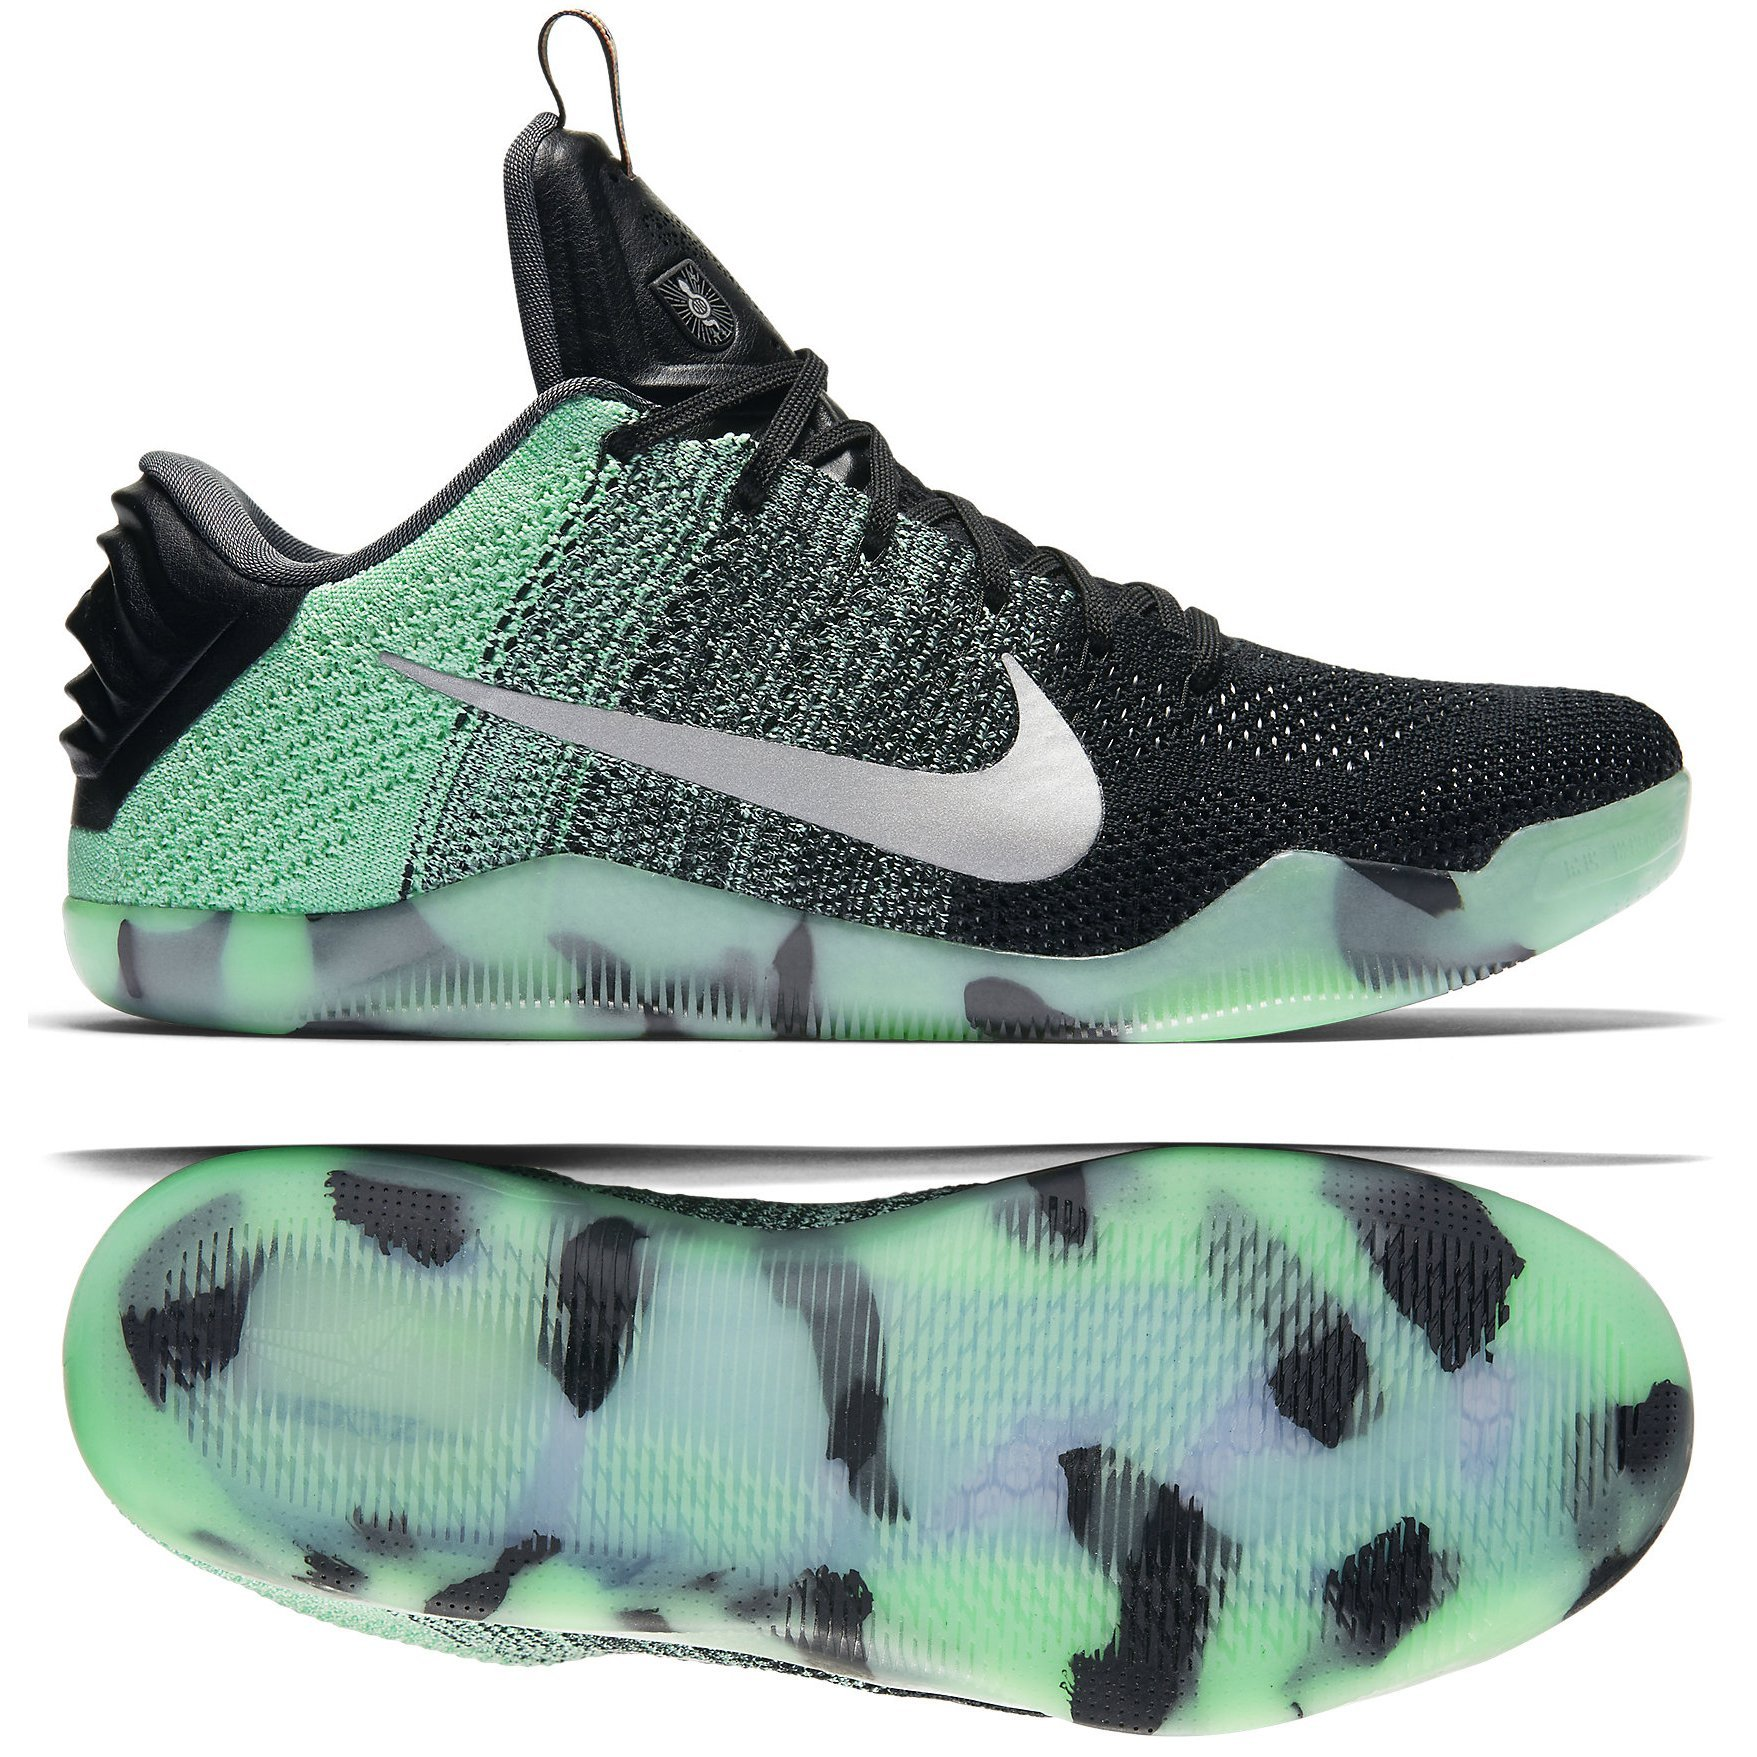 super popular 3810c 41024 Galleon - NIKE Kobe XI Elite Low All Star 11 Men Basketball Shoes New Green  Glow Black